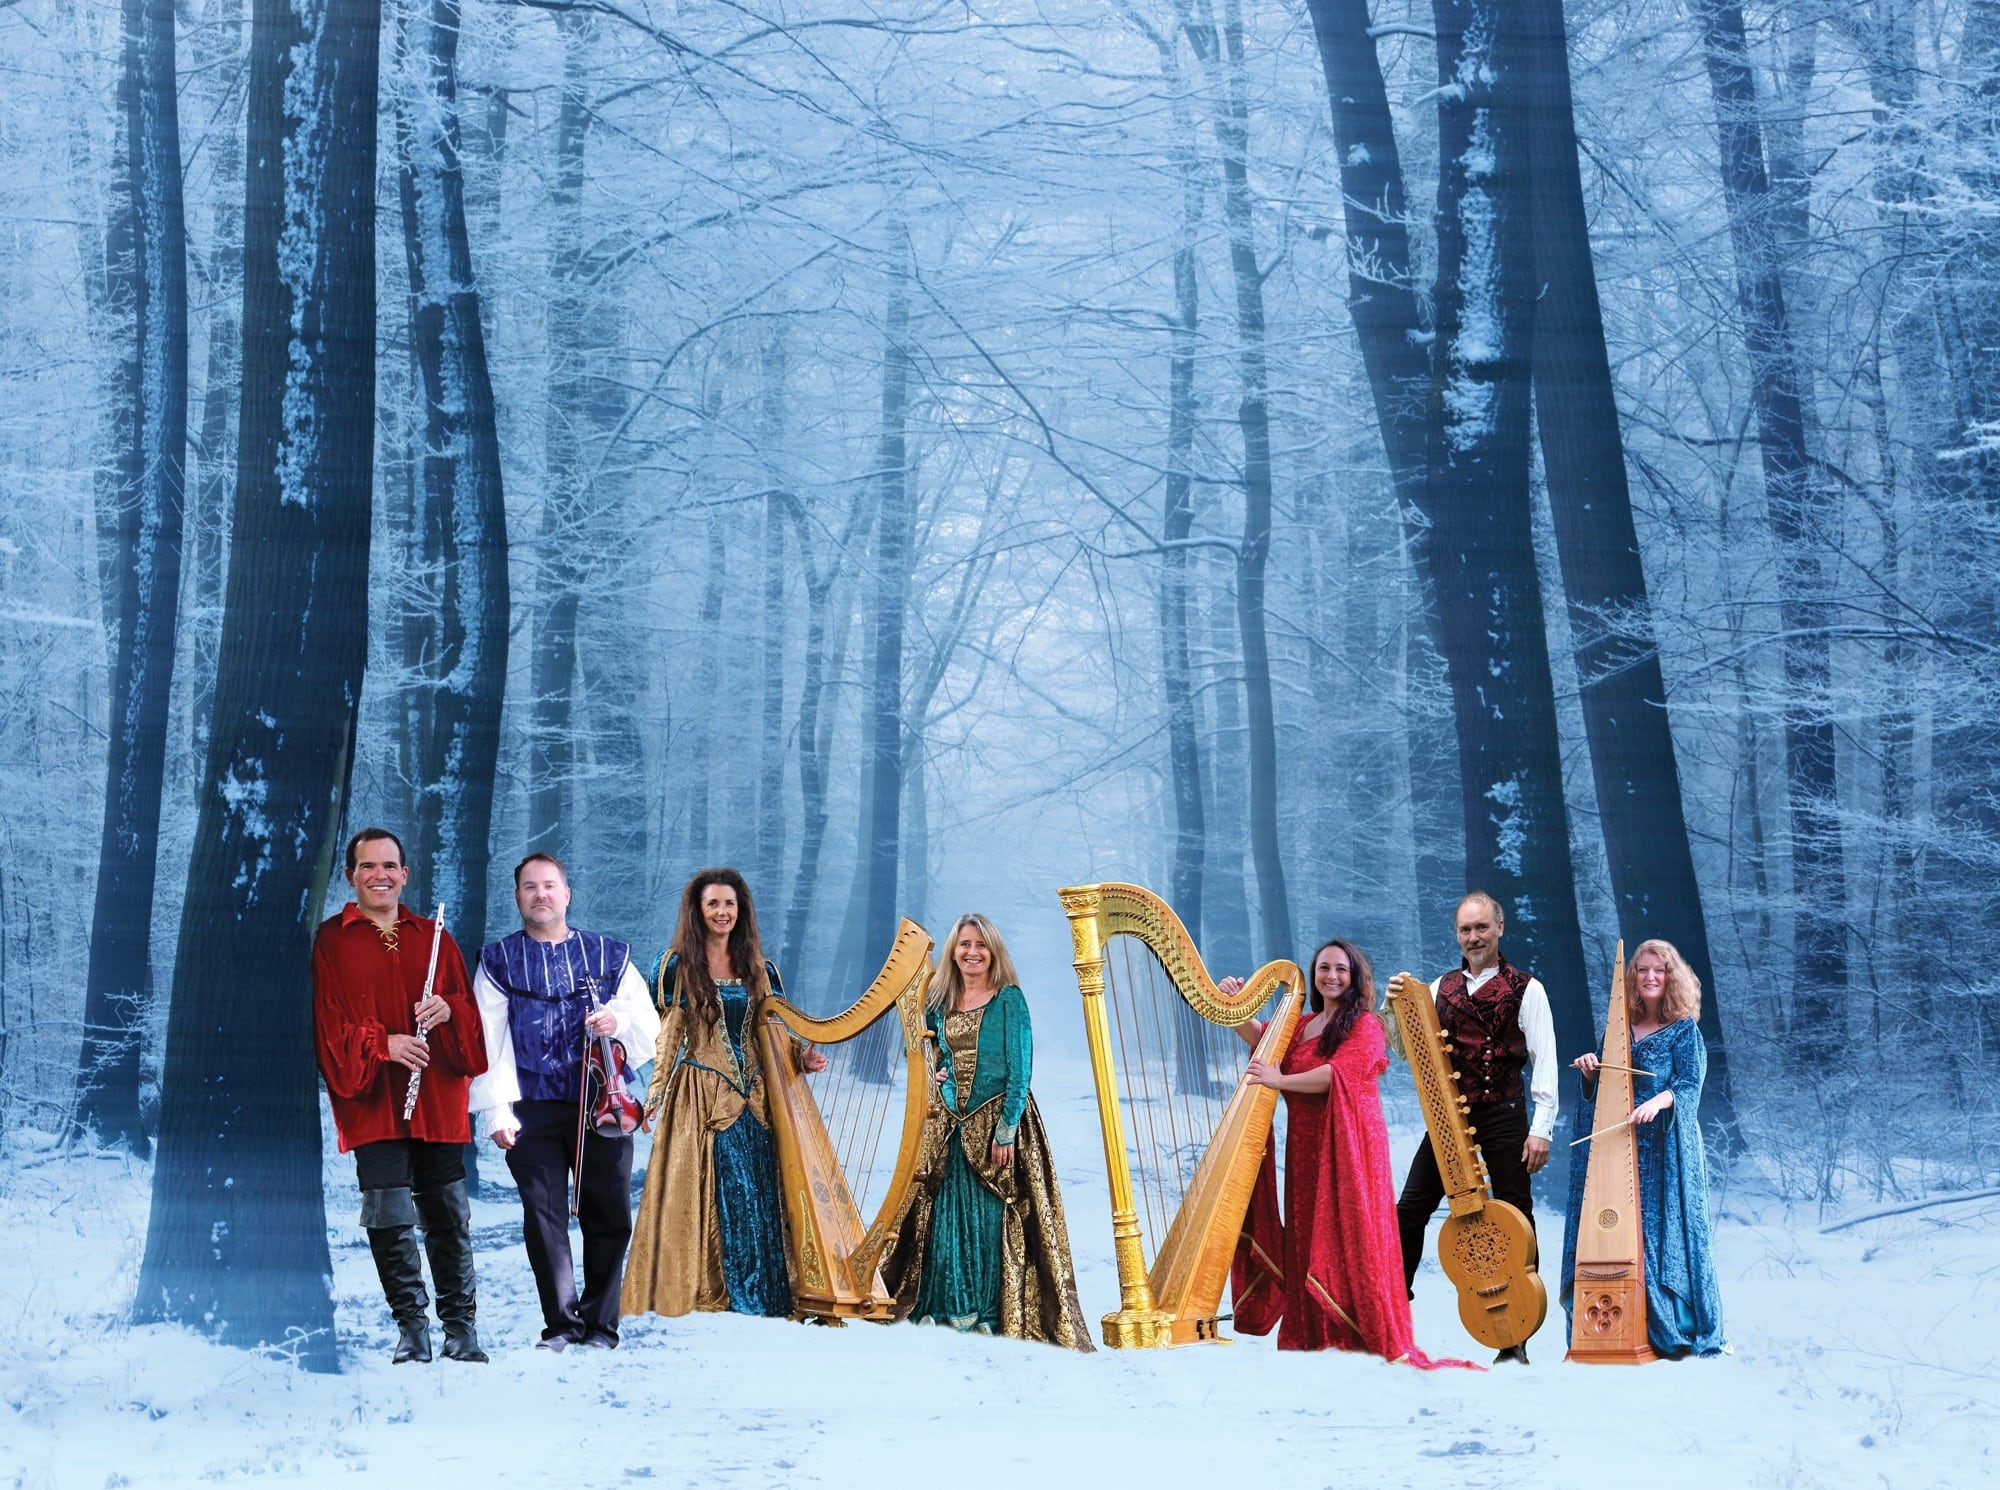 "WINTER HARP - December 15, 2019, 3pm & 7pmOne of the Lower Mainland's most beloved holiday concerts, Winter Harp takes you on a magical journey you will never forget.Join this world-class ensemble of singers, harps, flute, violin, medieval instruments and percussion for a concert of heartwarming carols and stories in celebration of Christmas. The musicians, in rich medieval attire, perform on a stage set with magnificent backdrops of cathedral and snow that will whisk you to a land of pure magic.For 25 years, tens of thousands of people have made Winter Harptheir annual tradition. Winter Harp….. Christmas begins here.""...an enrapturing event that plucks at your heart strings."